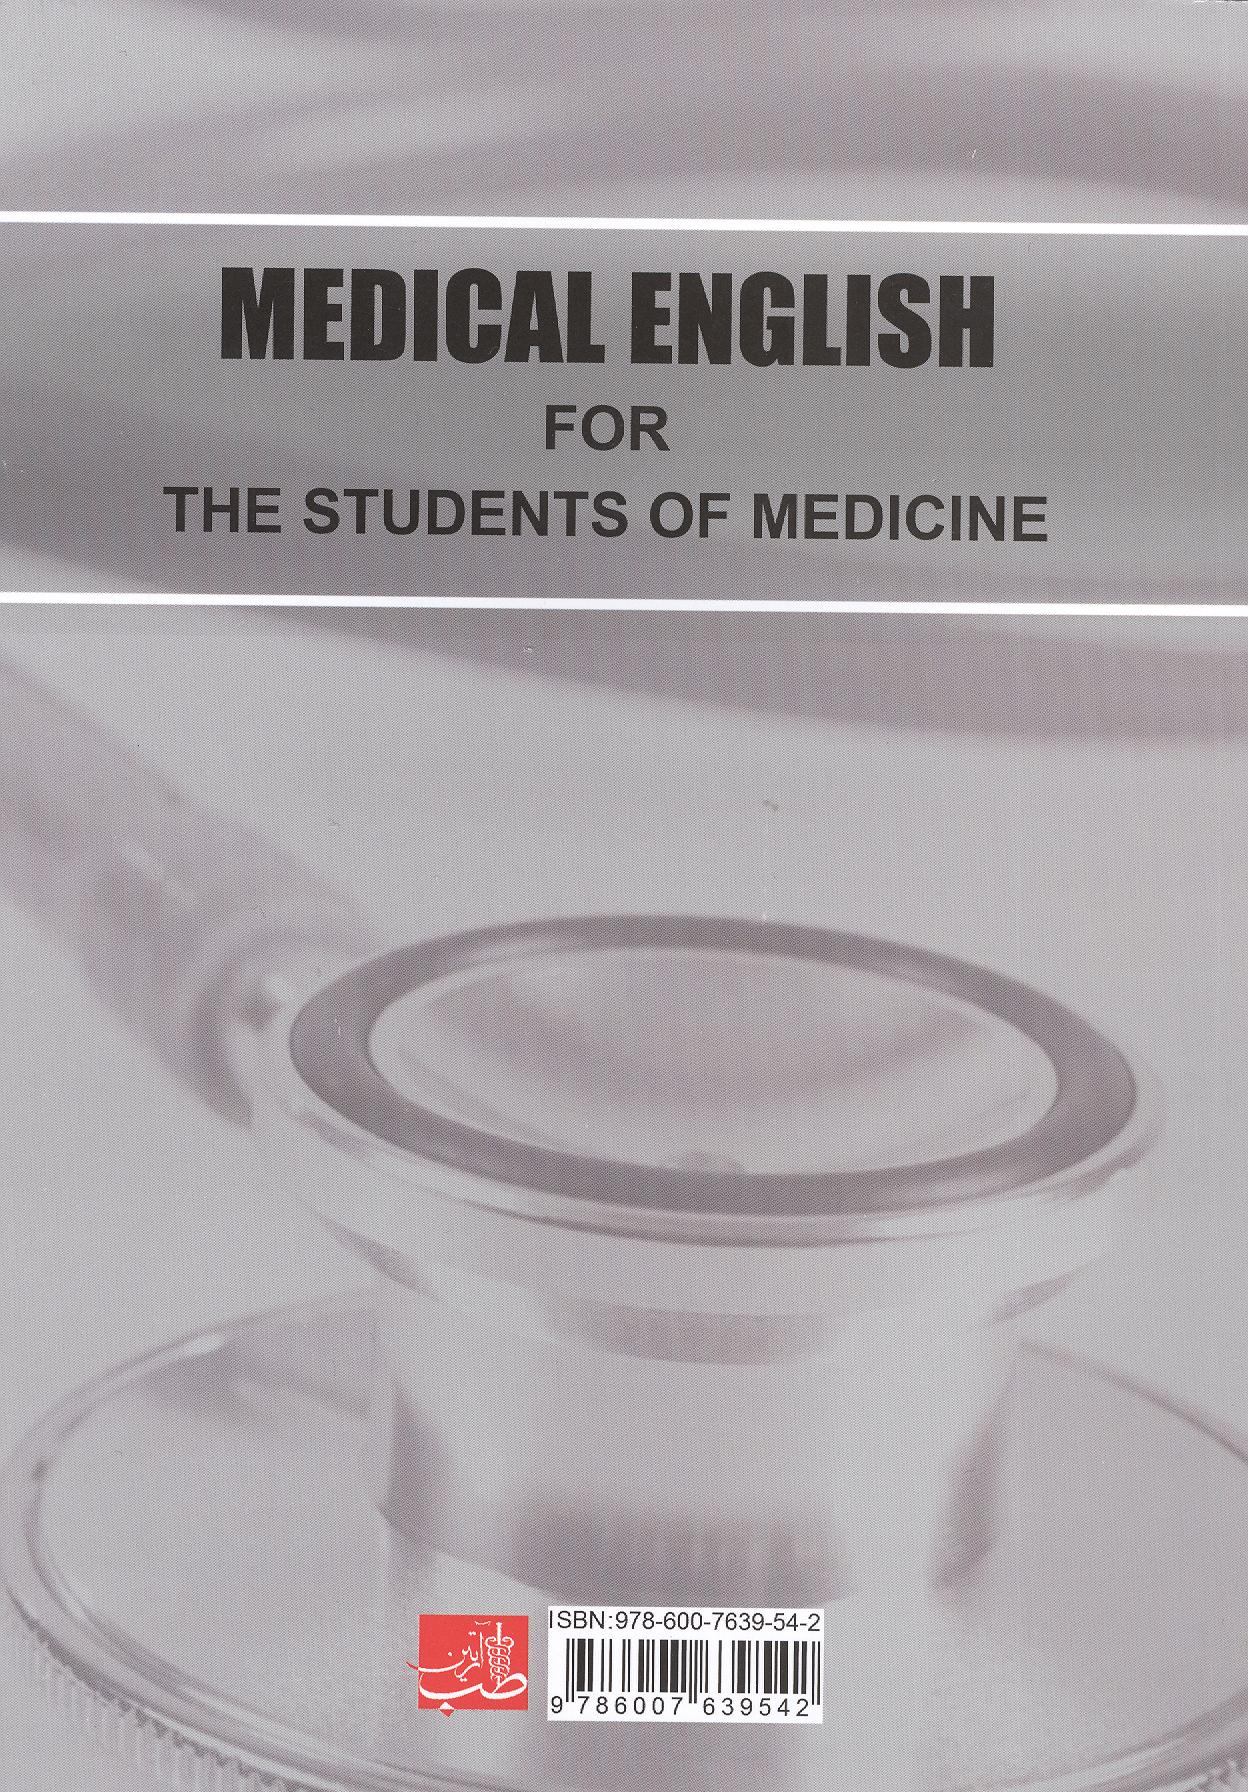 MEDICAL ENGLISH FOR THE STUDENTS OF MEDICINE